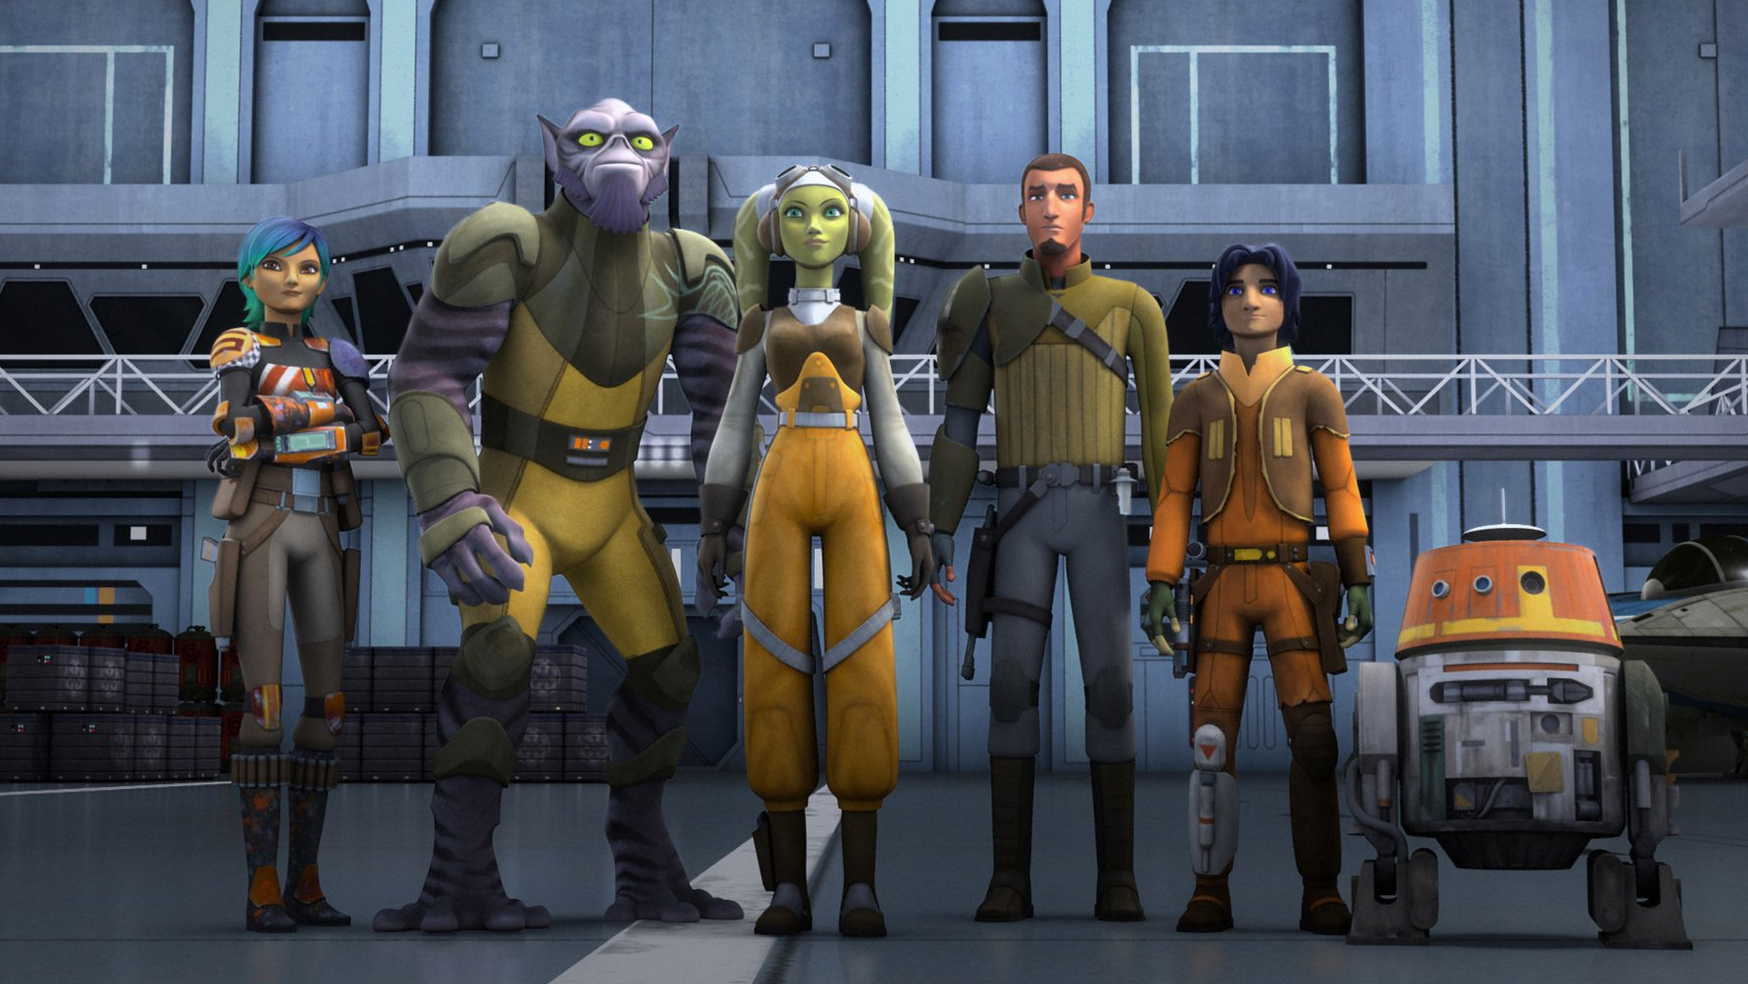 Star Wars Rebels (2014) Titles: Star Wars Rebels, Homecoming Characters: Kanan Jarrus, Ezra Bridger, Hera Syndulla, Zeb Orrelios, Sabine Wren Photo by Disney